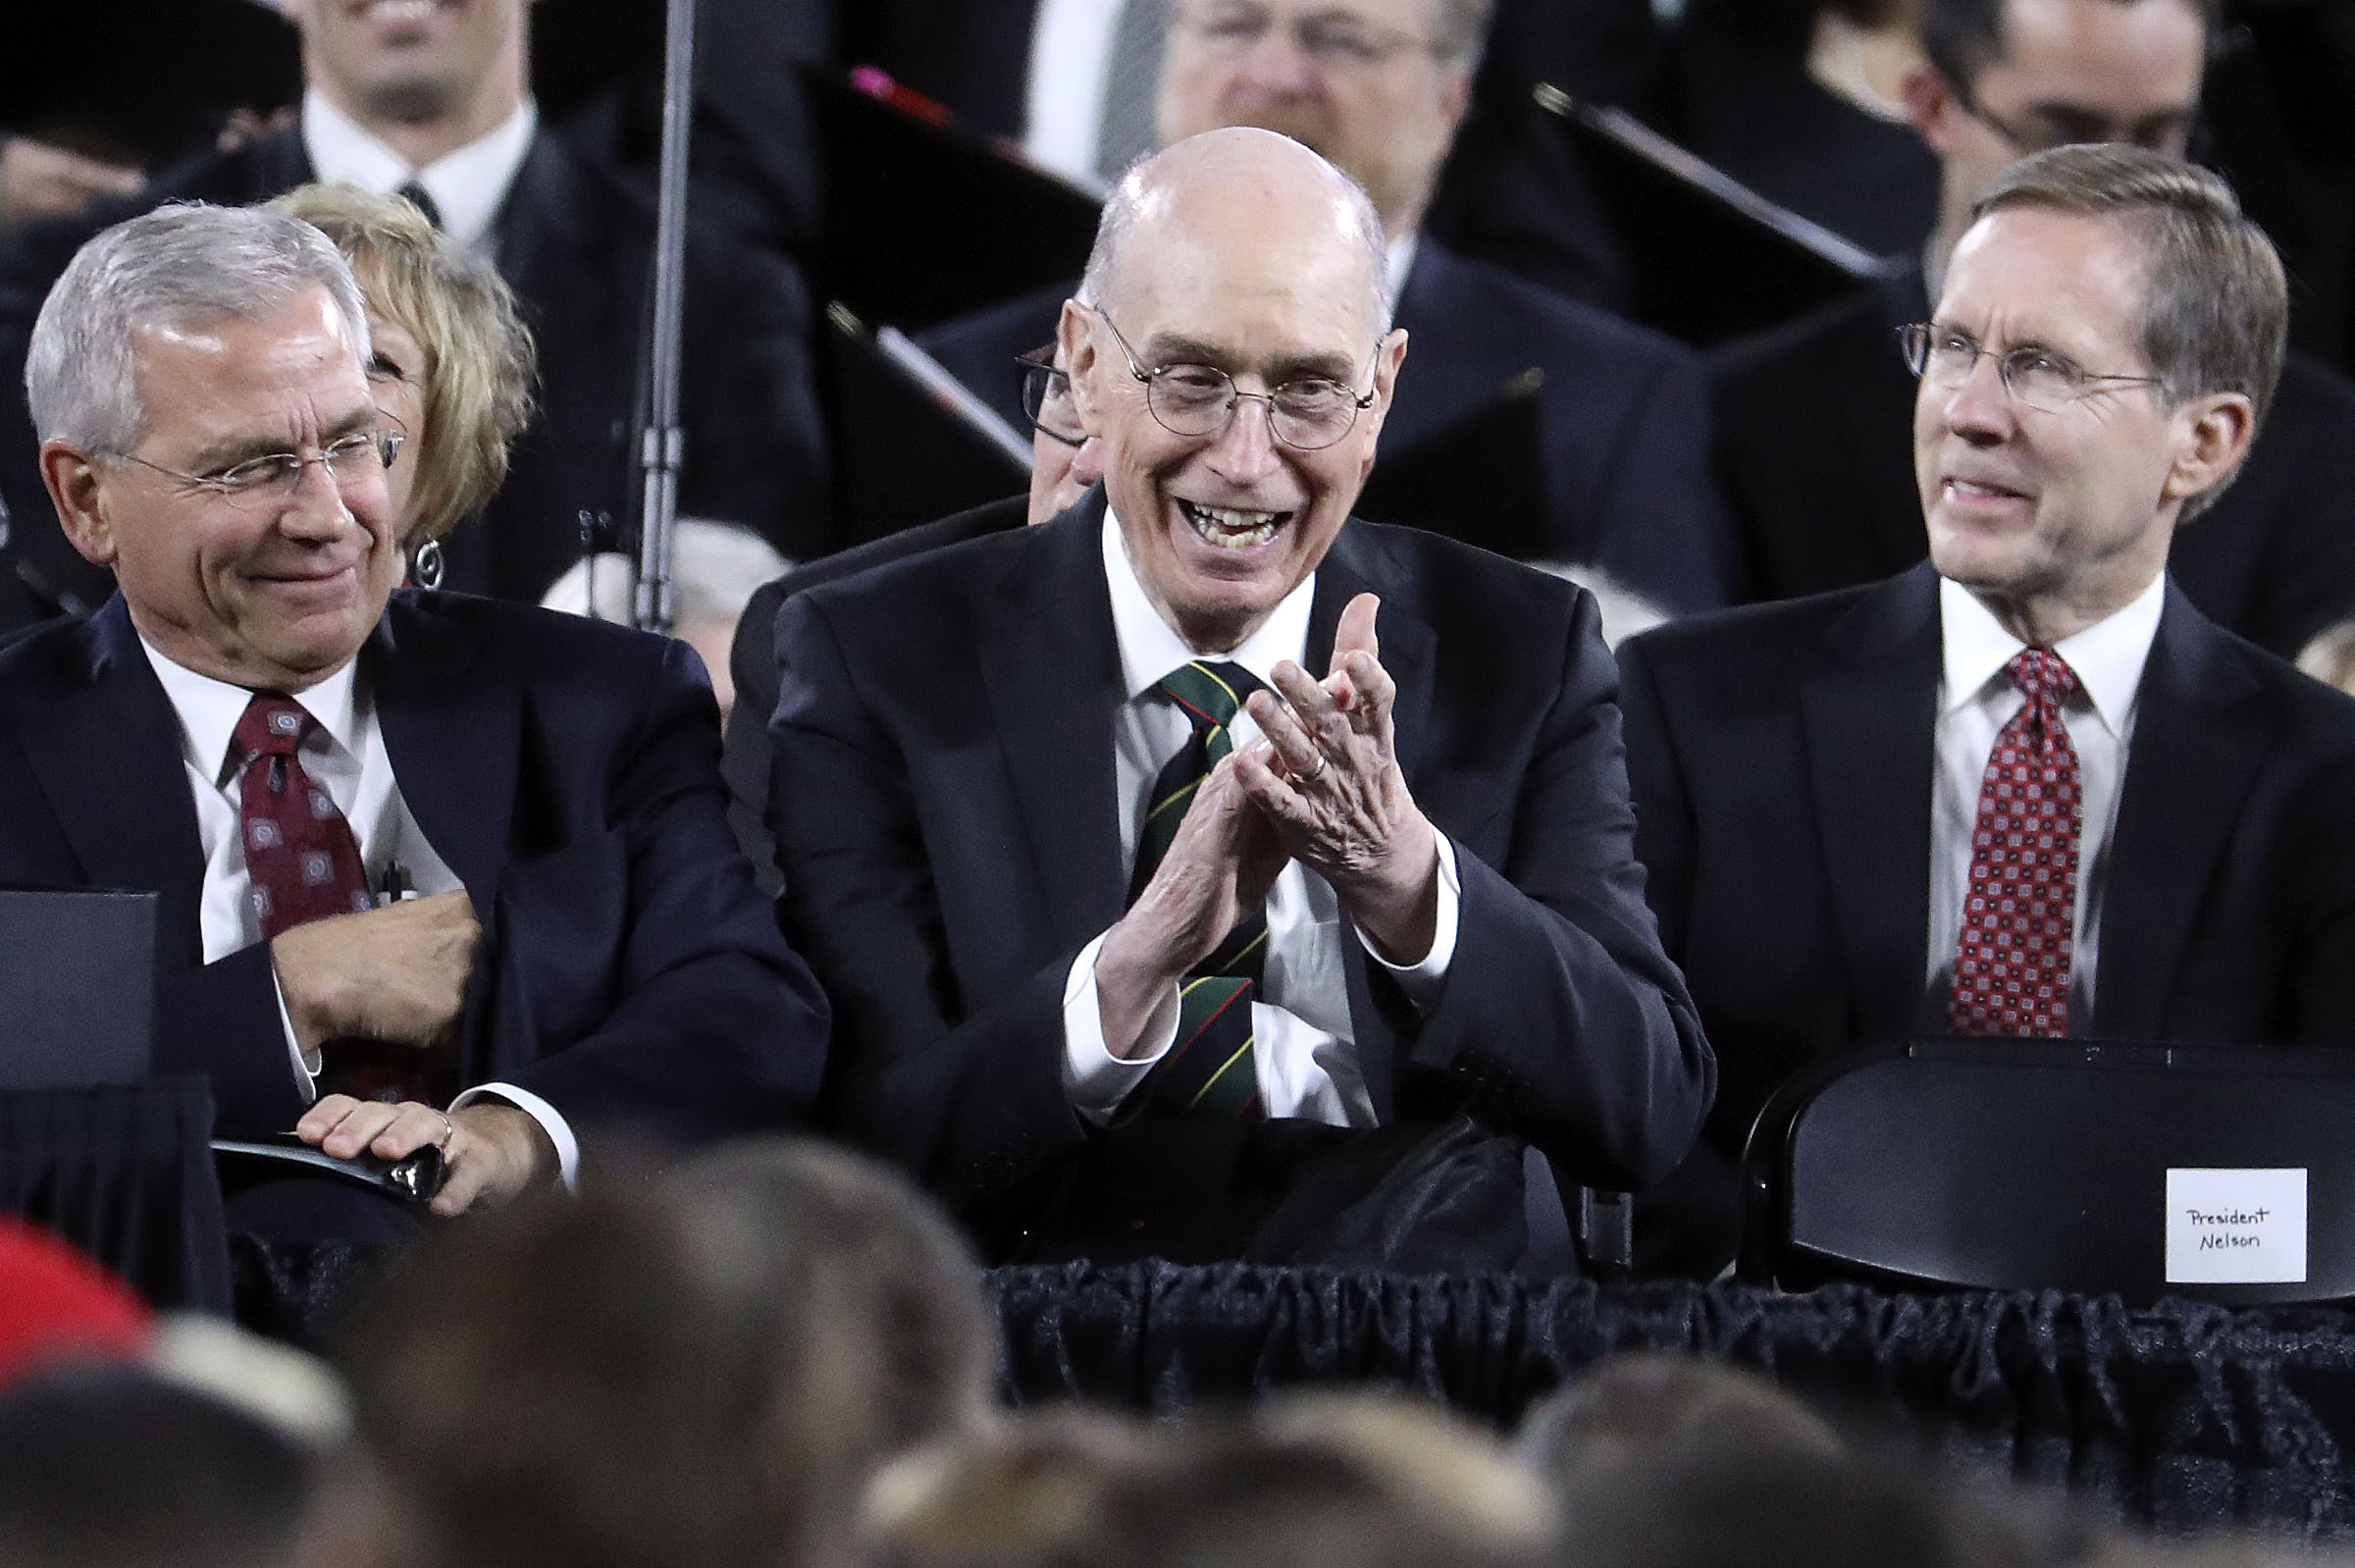 President Henry B. Eyring, second counselor in the First Presidency, laughs as President Russell M. Nelson of The Church of Jesus Christ of Latter-day Saints speaks at Safeco Field in Seattle, Wash., on Saturday, Sept. 15, 2018.